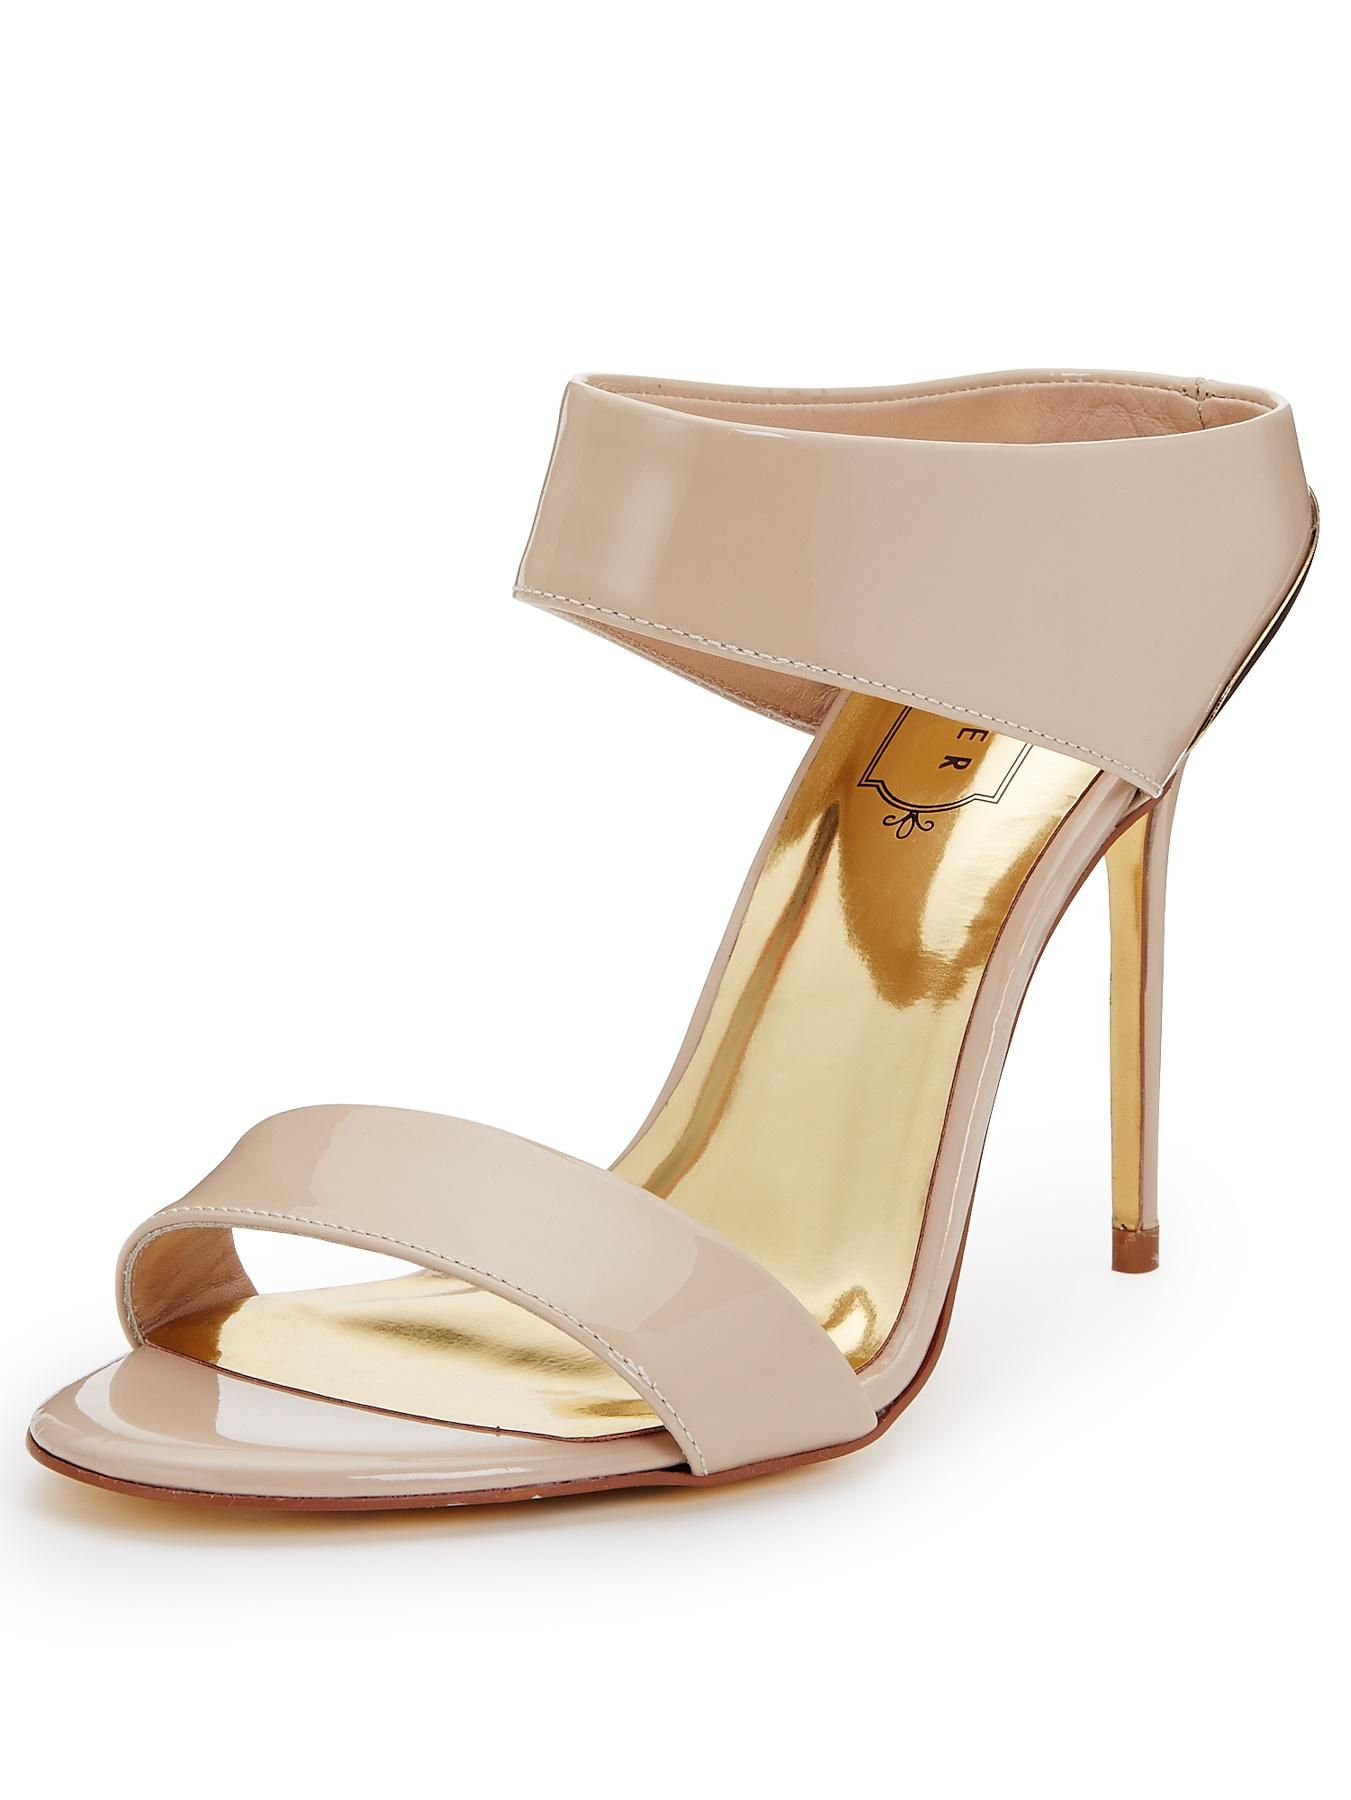 39374df69 Ted Baker Chablis Nude Two Strap Mule Sandals